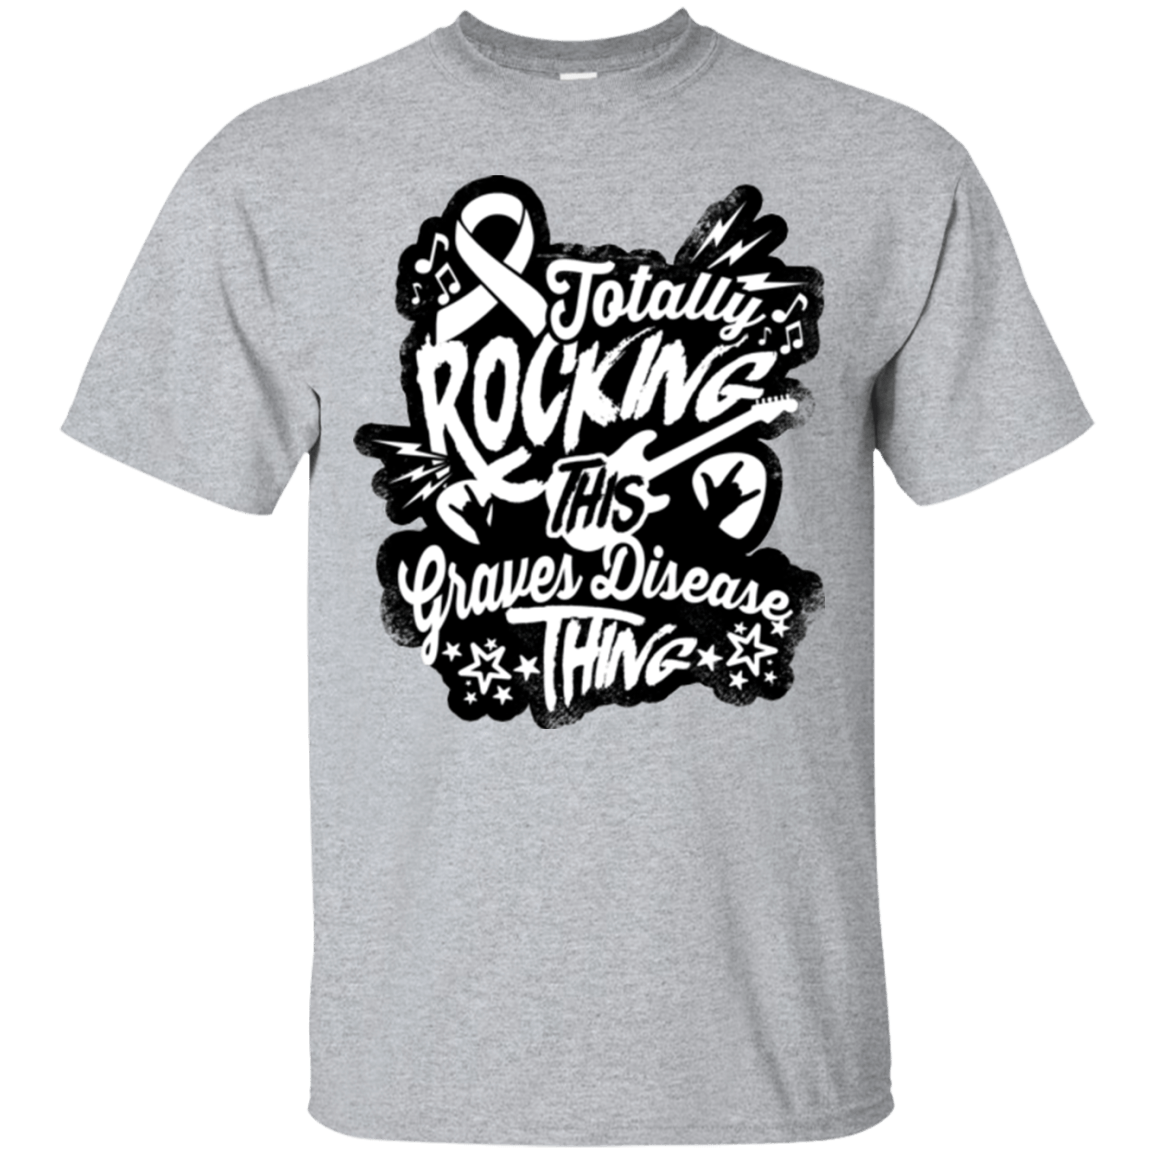 Rocking Graves Disease Unisex Shirt - The Unchargeables